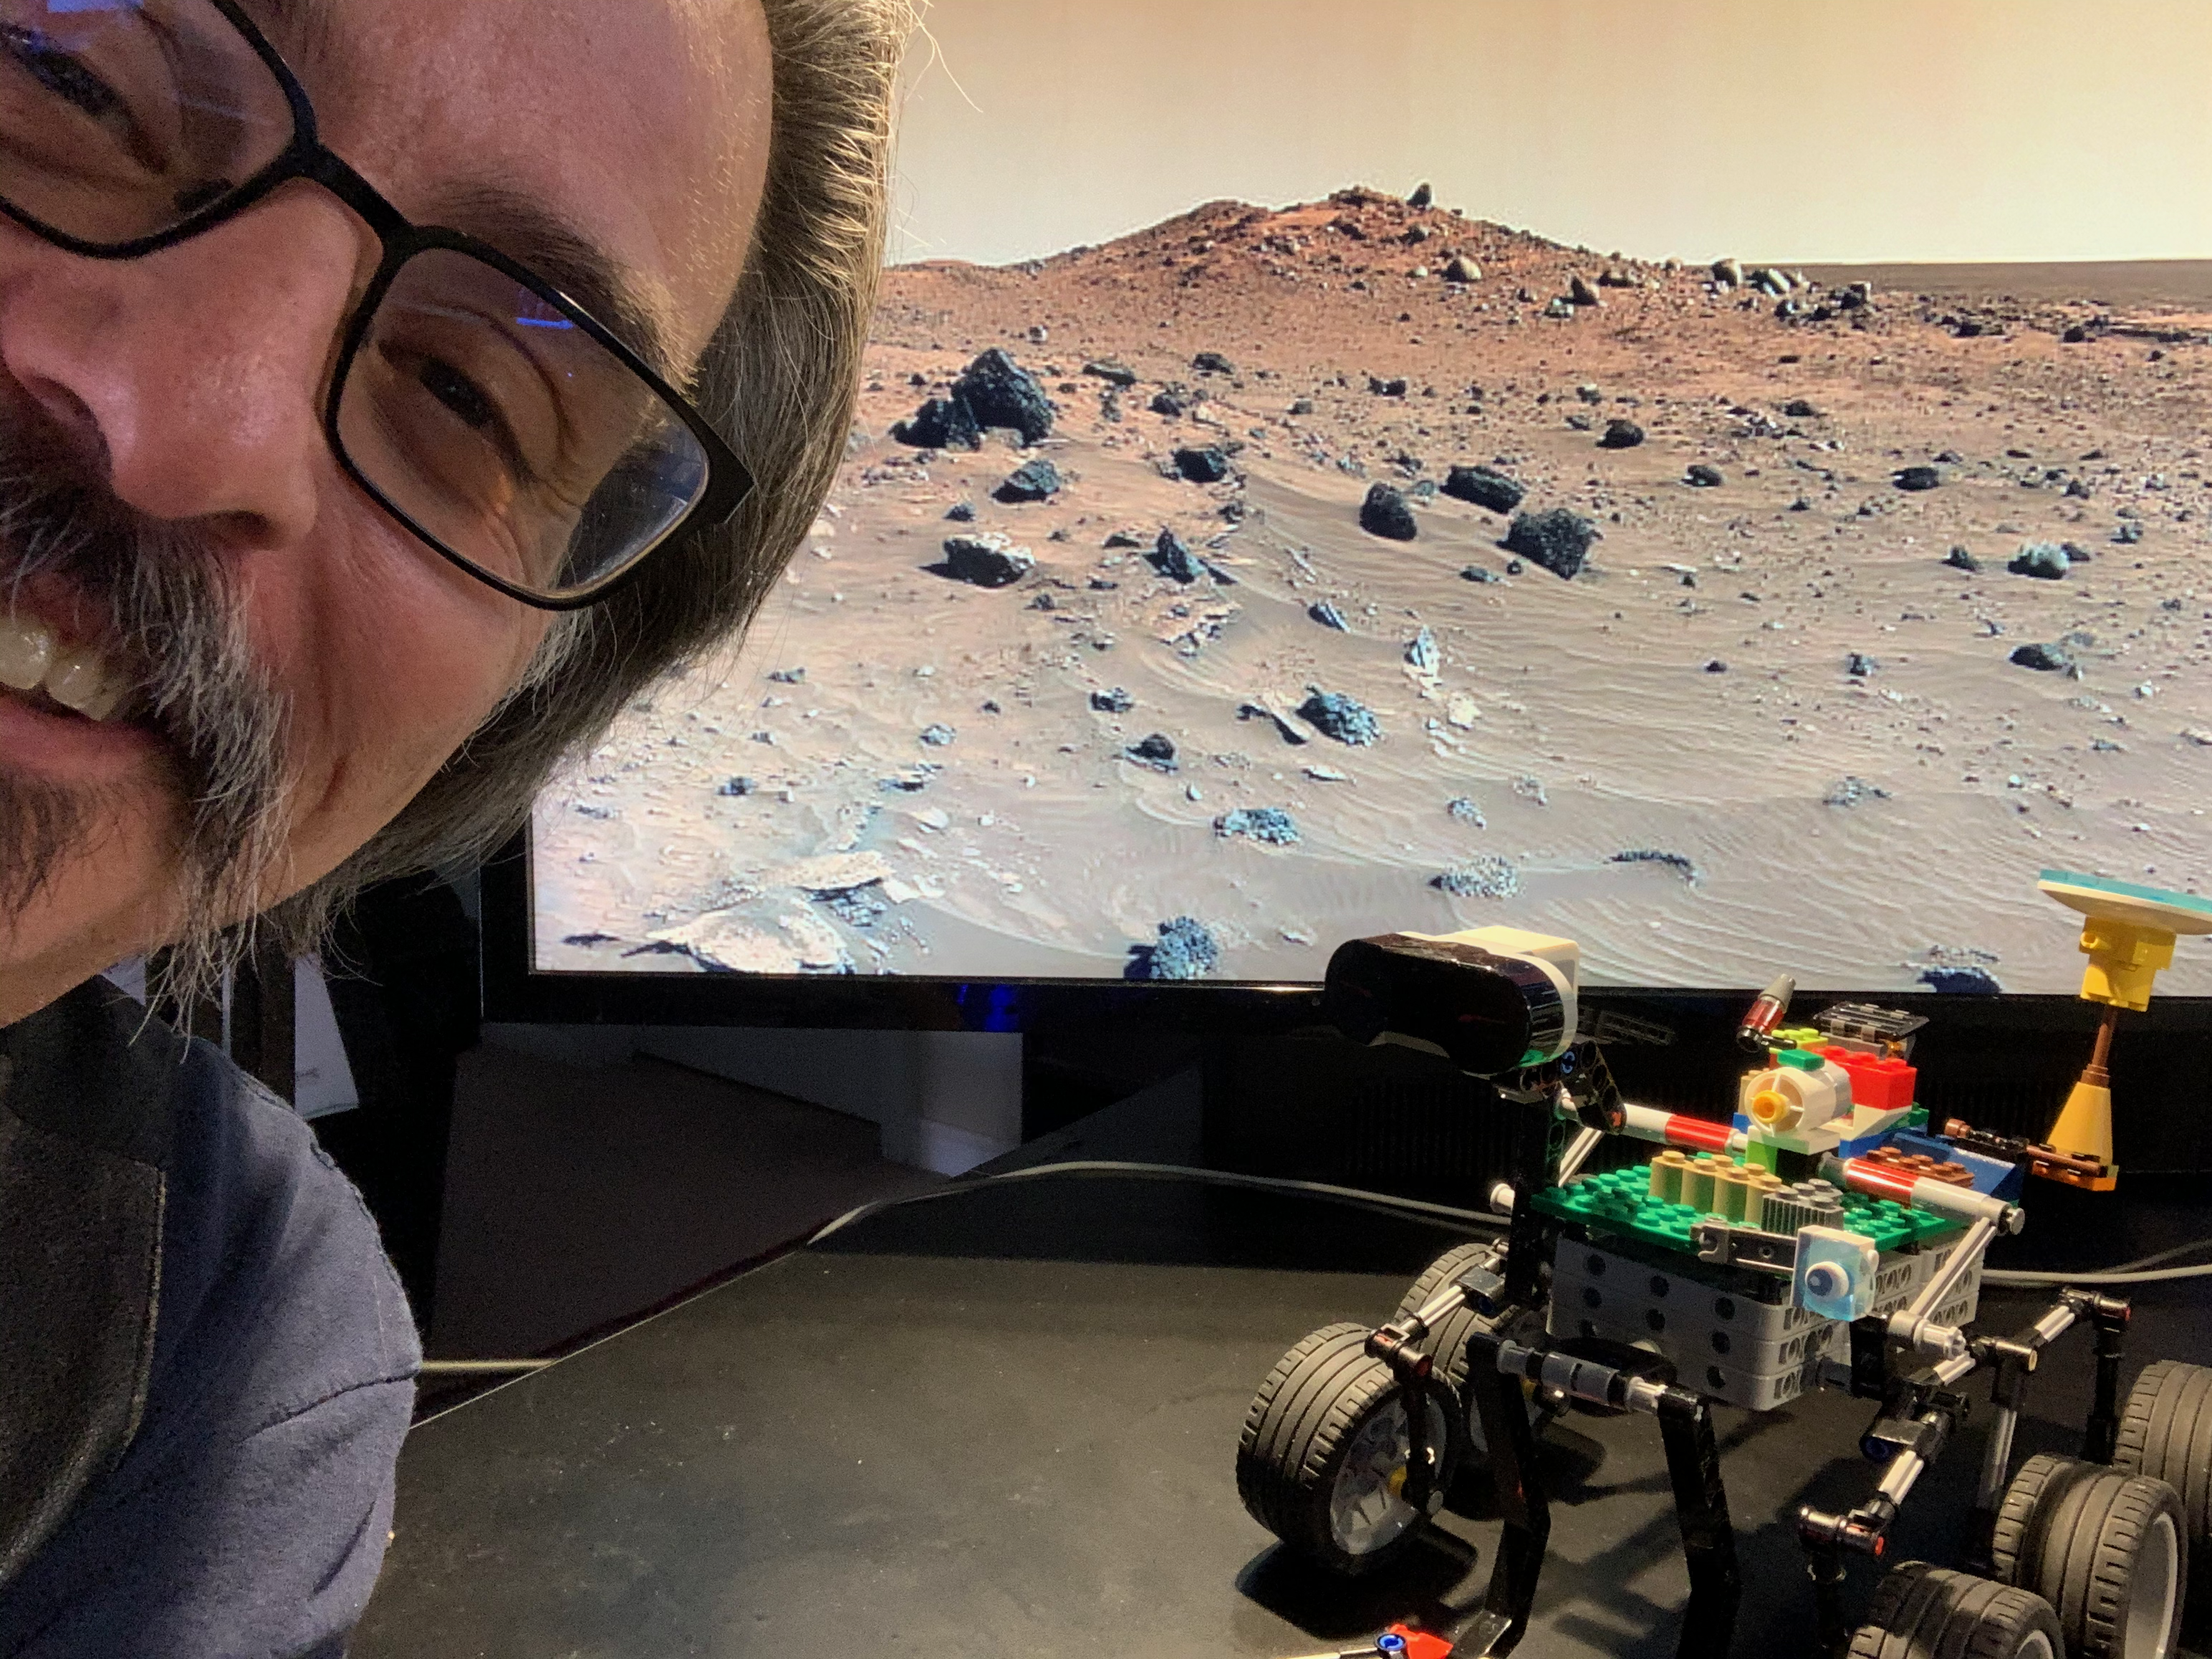 2021-02-18_me-and-my-mars-rover_2